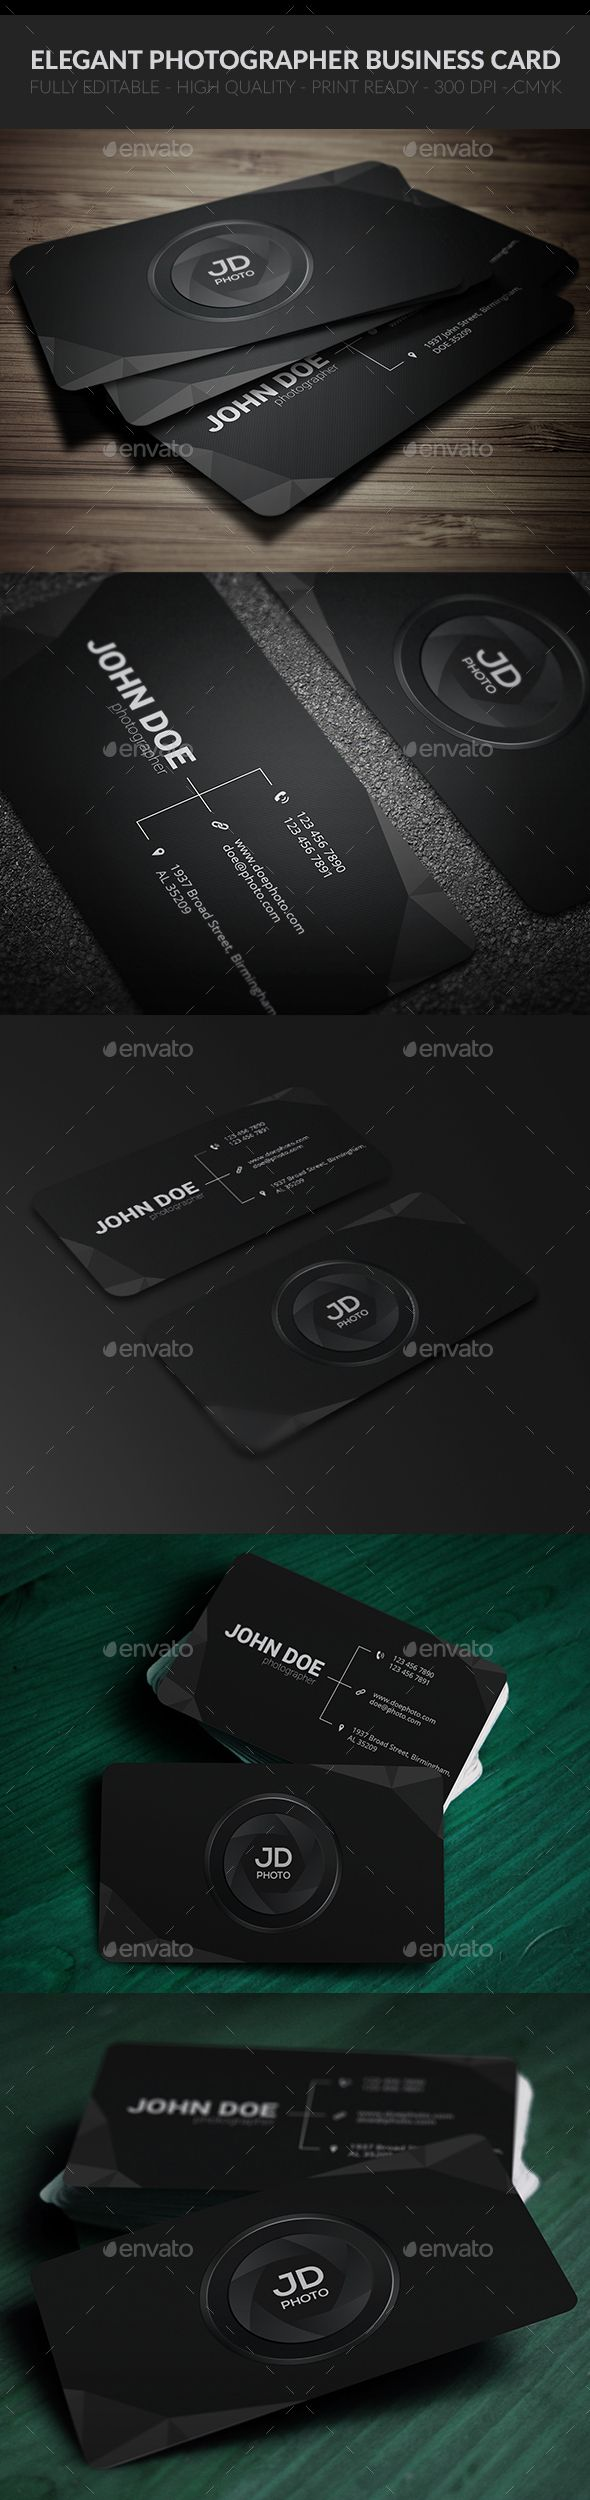 The 250 best Photography Business Card Design images on Pinterest ...